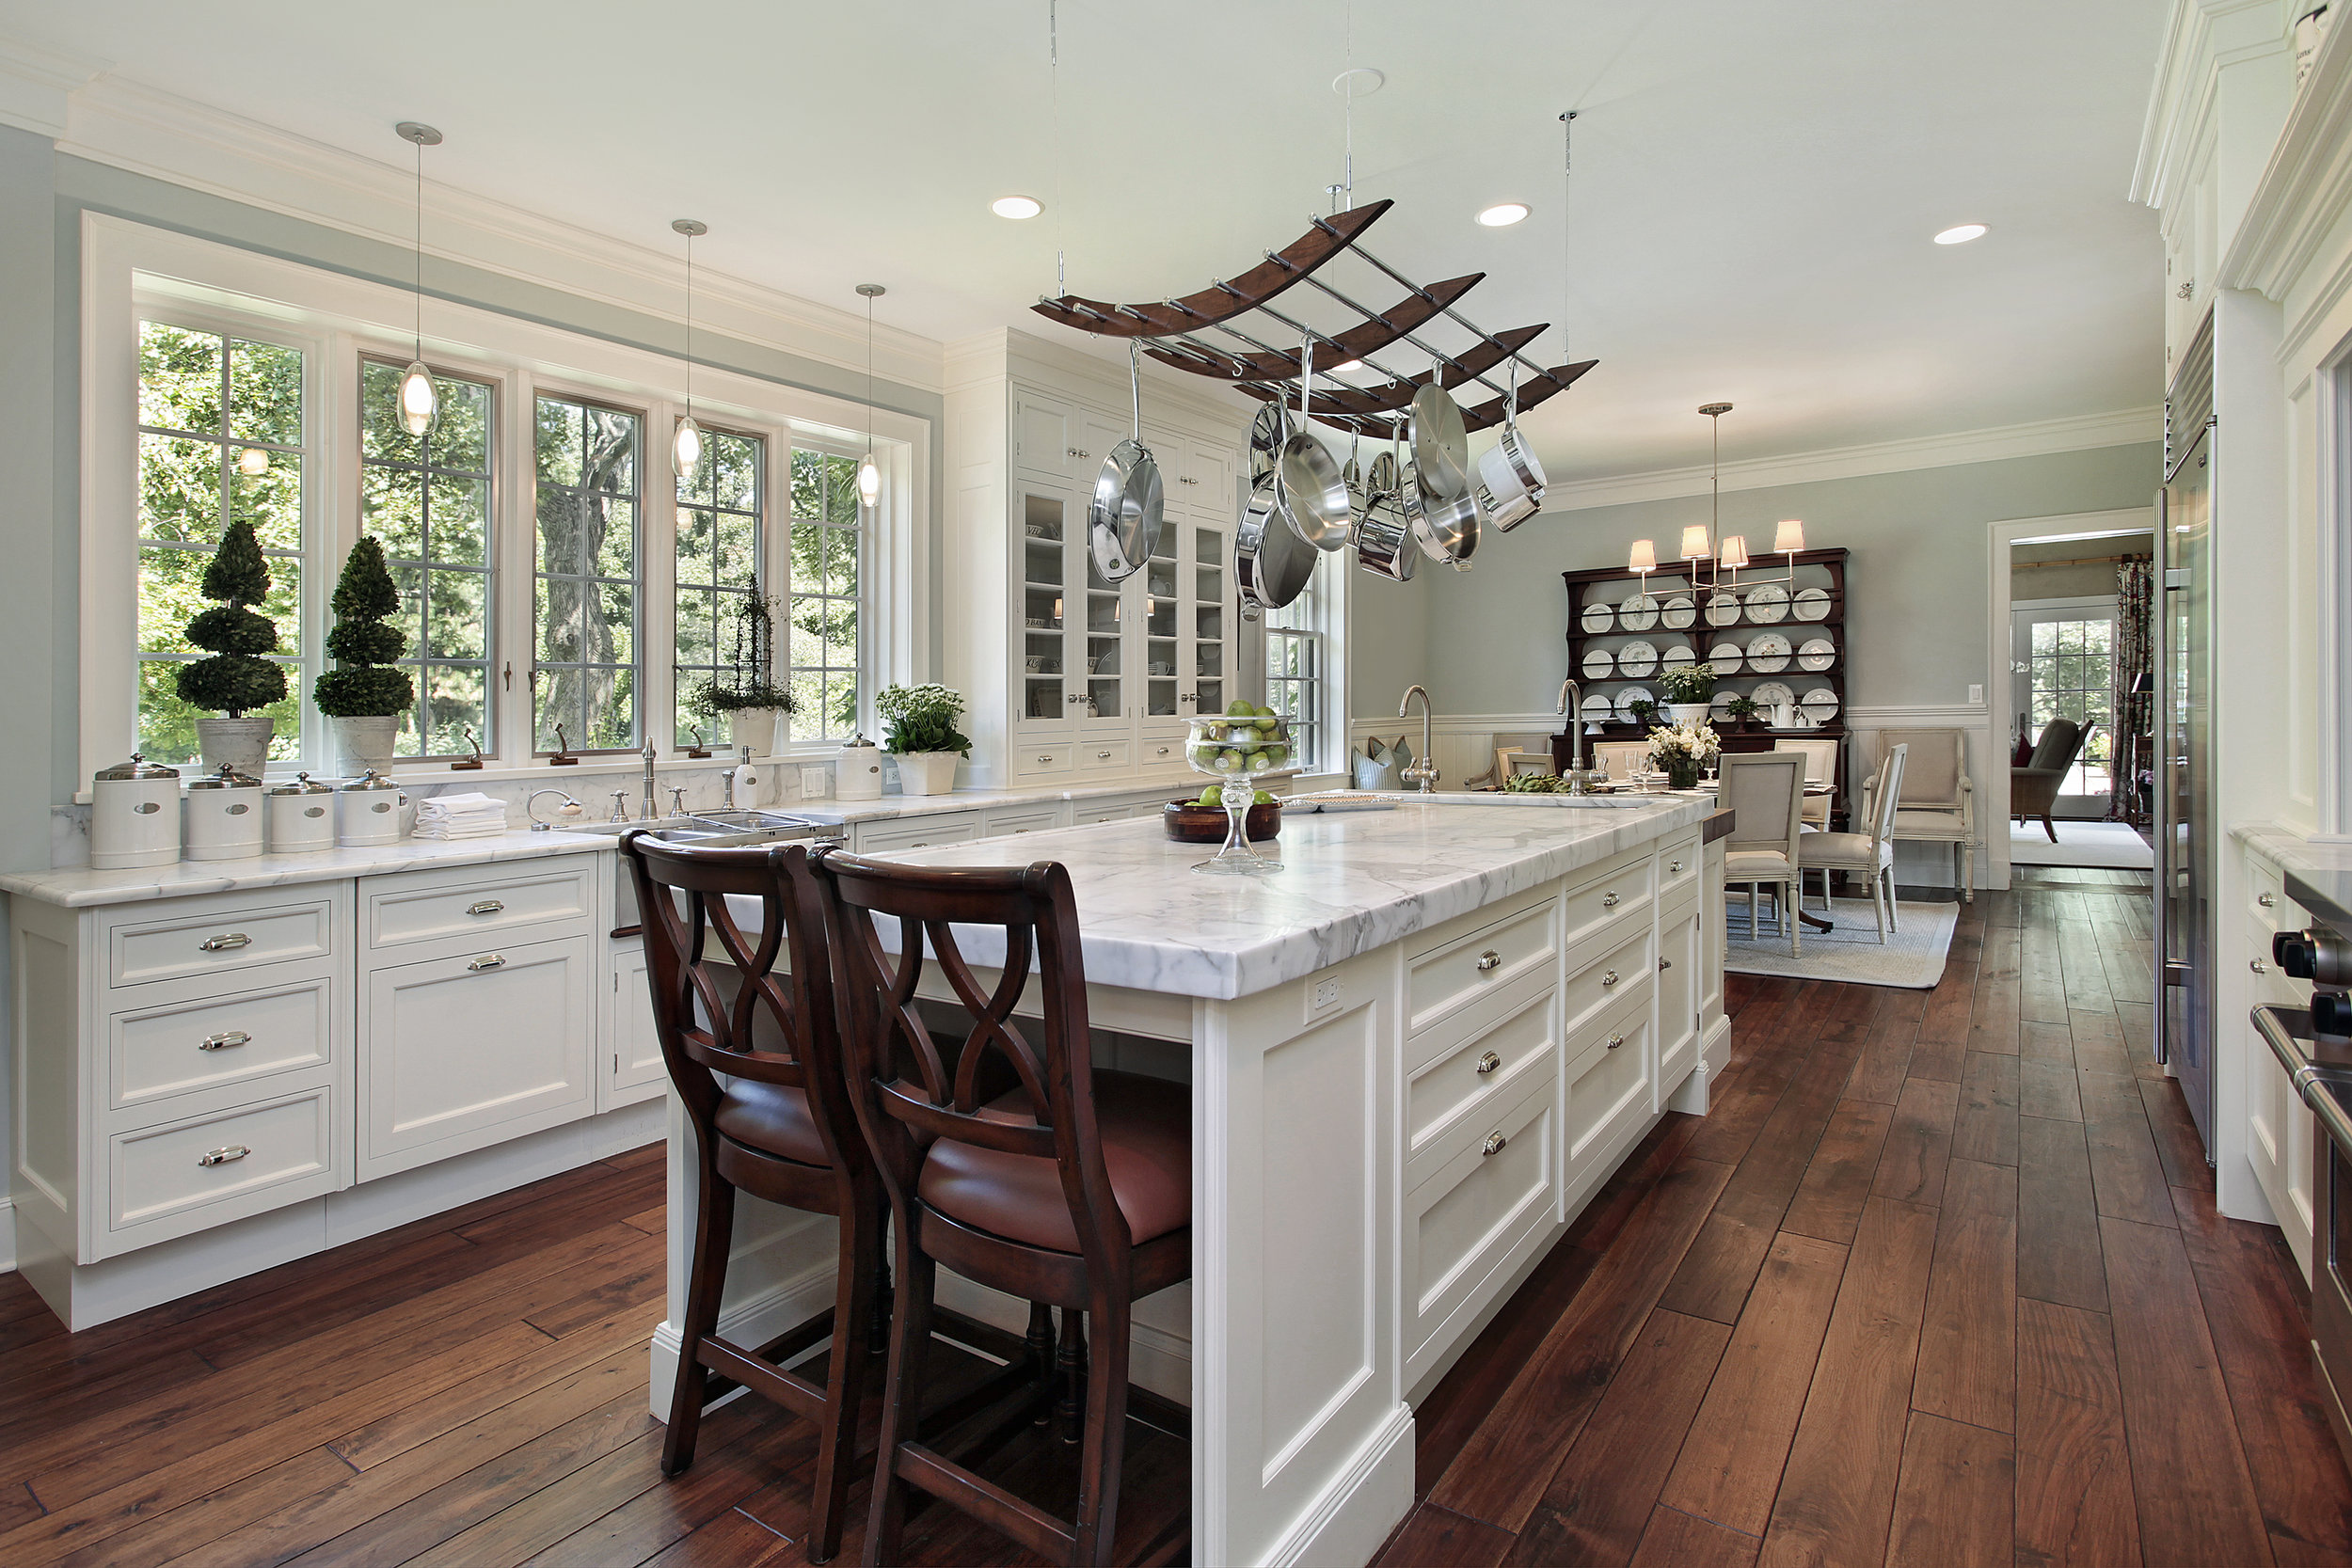 bigstock-Kitchen-in-luxury-home-with-wh-16568375.jpg